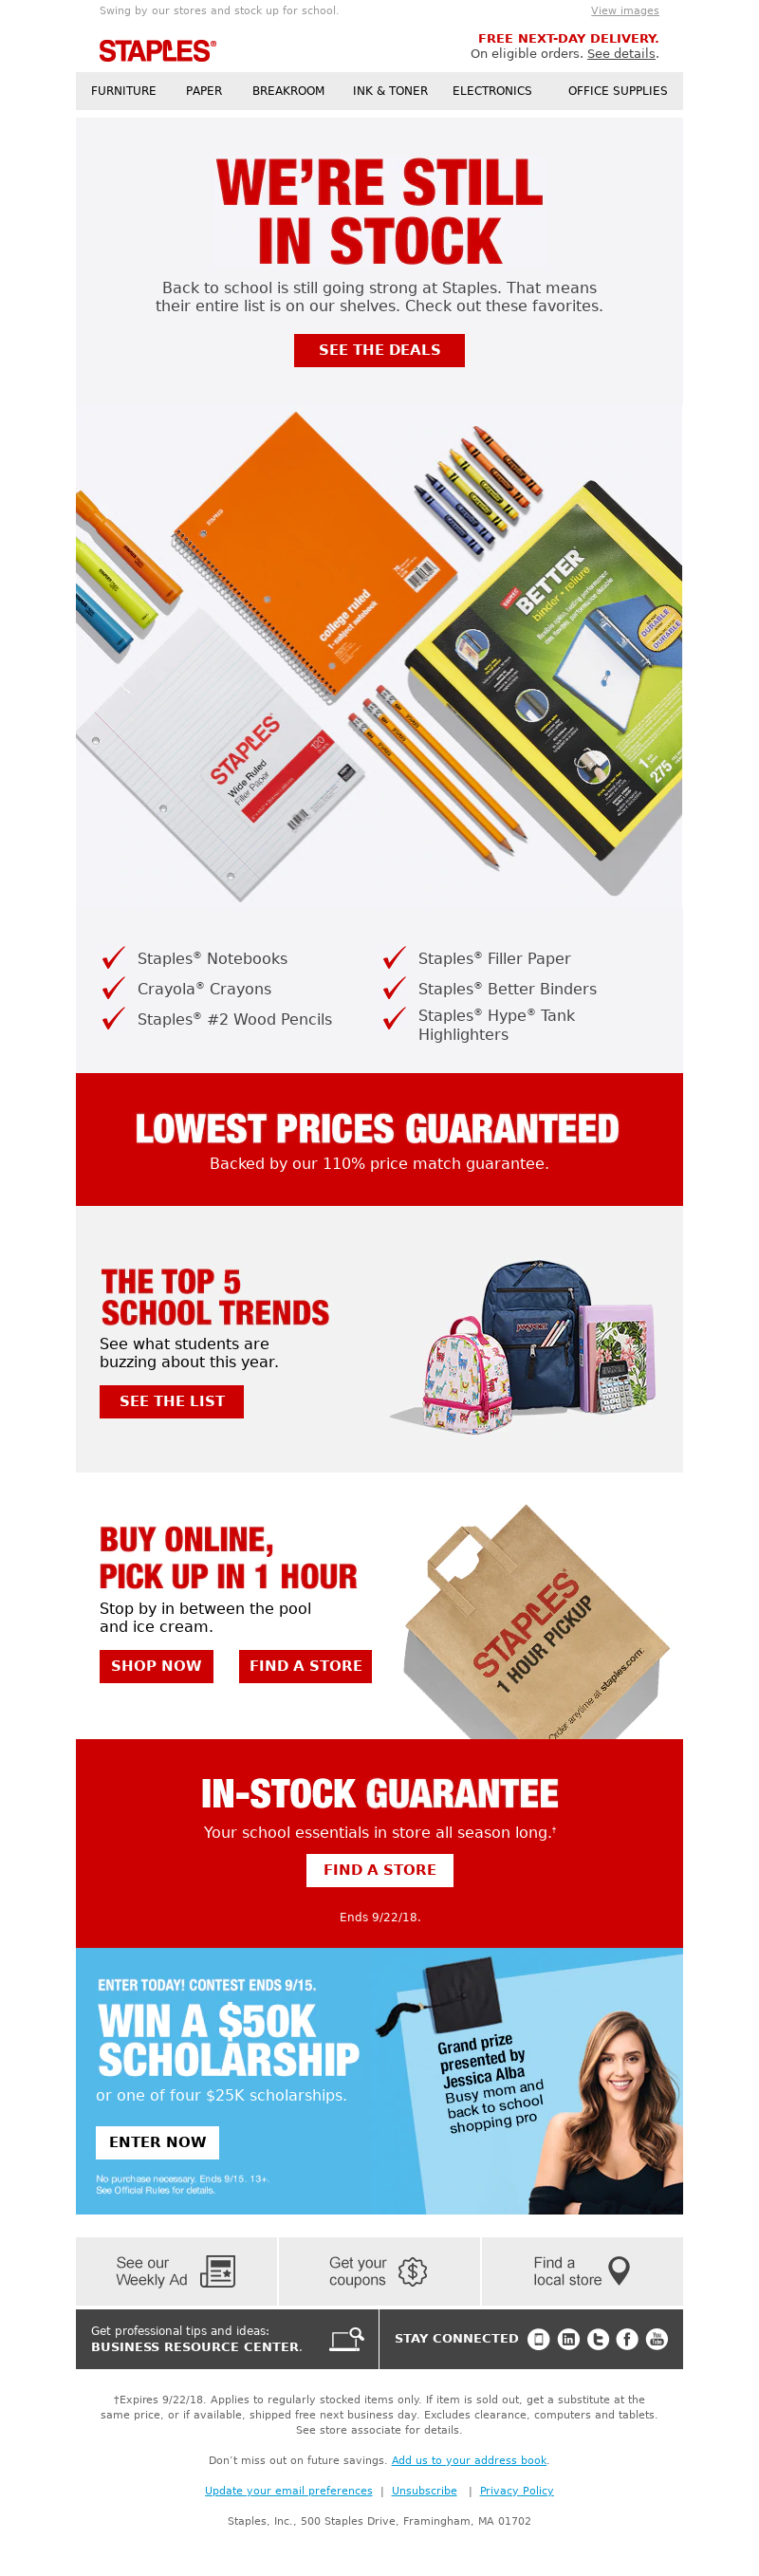 Staples - The school supplies you need. In stock guaranteed.